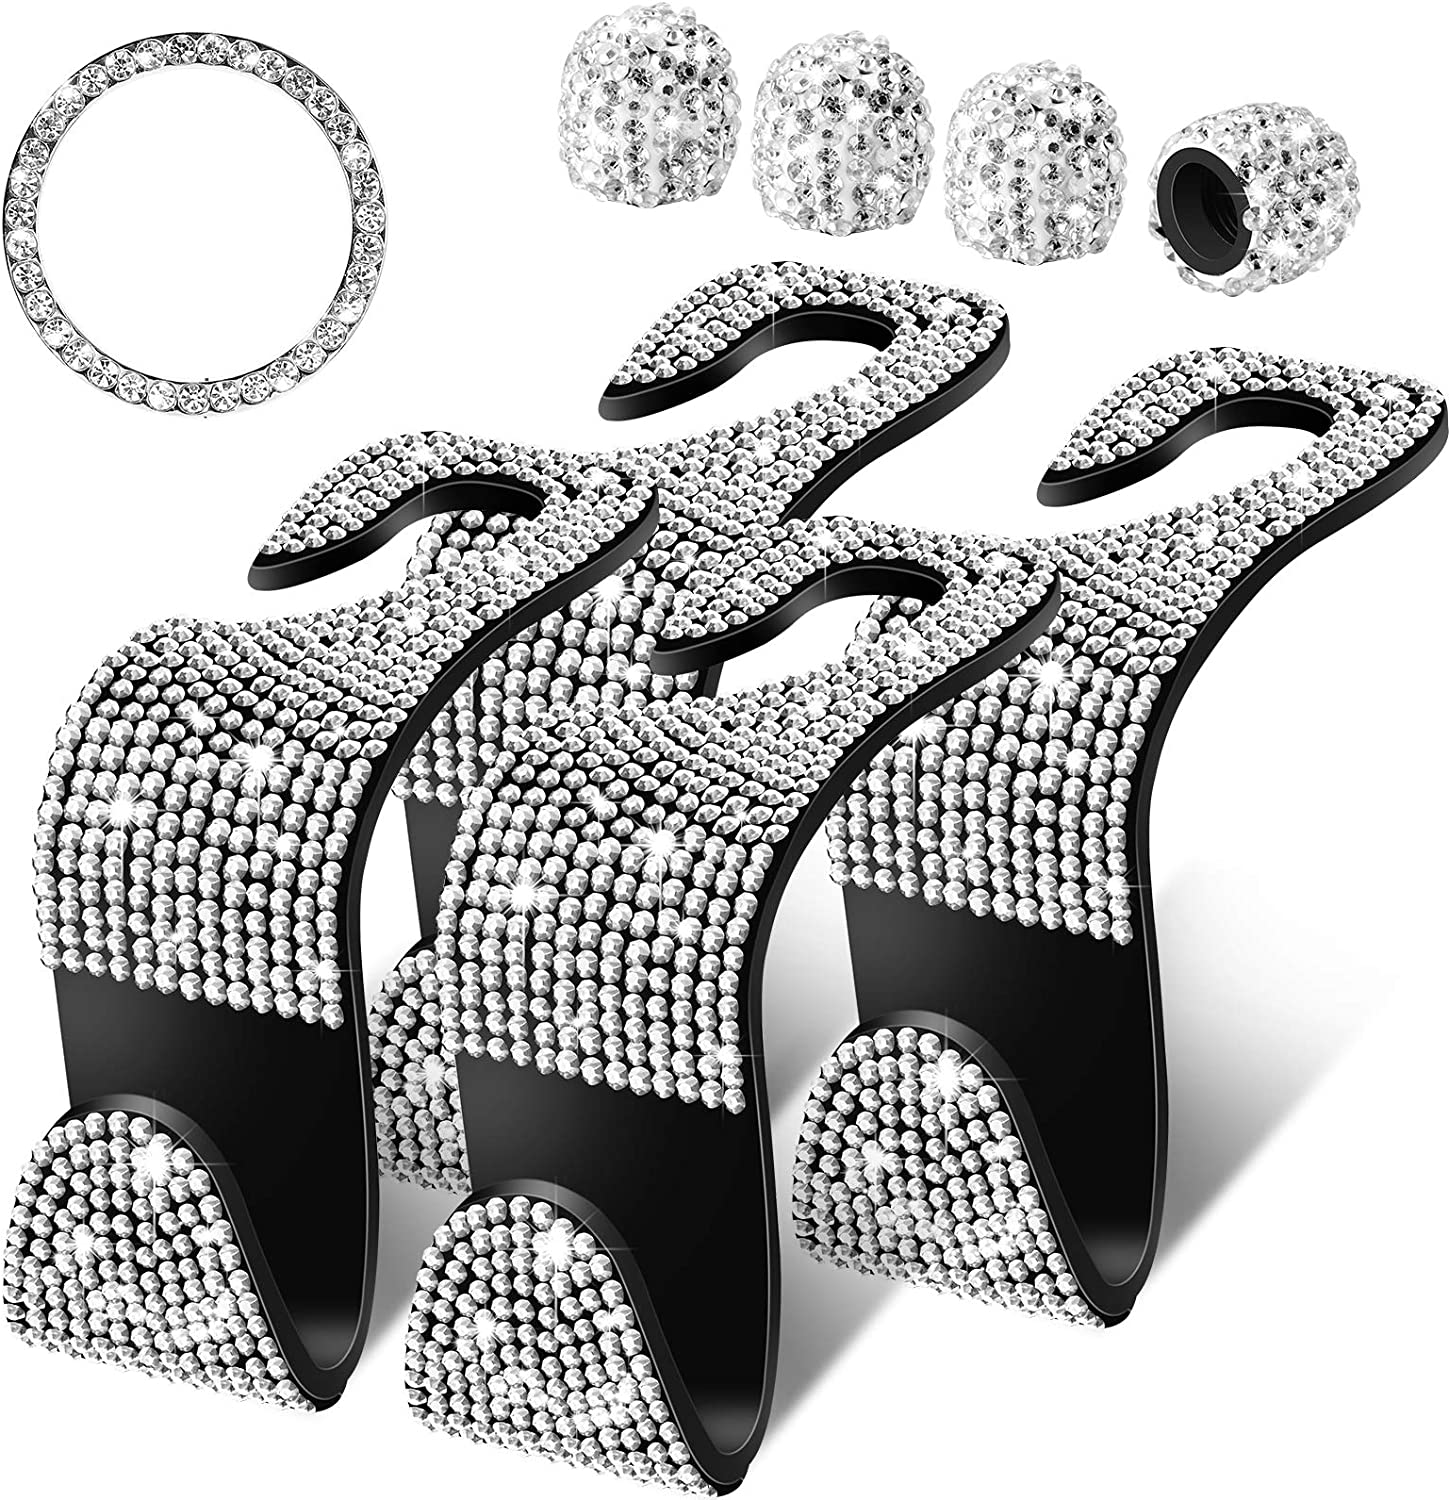 4 Pieces Bling Car Seat Hooks Crystal Car Accessories Hooks Start Button Ring Decal and 4 Pieces Rhinestone Valve Stem Caps for Vehicle Car Application